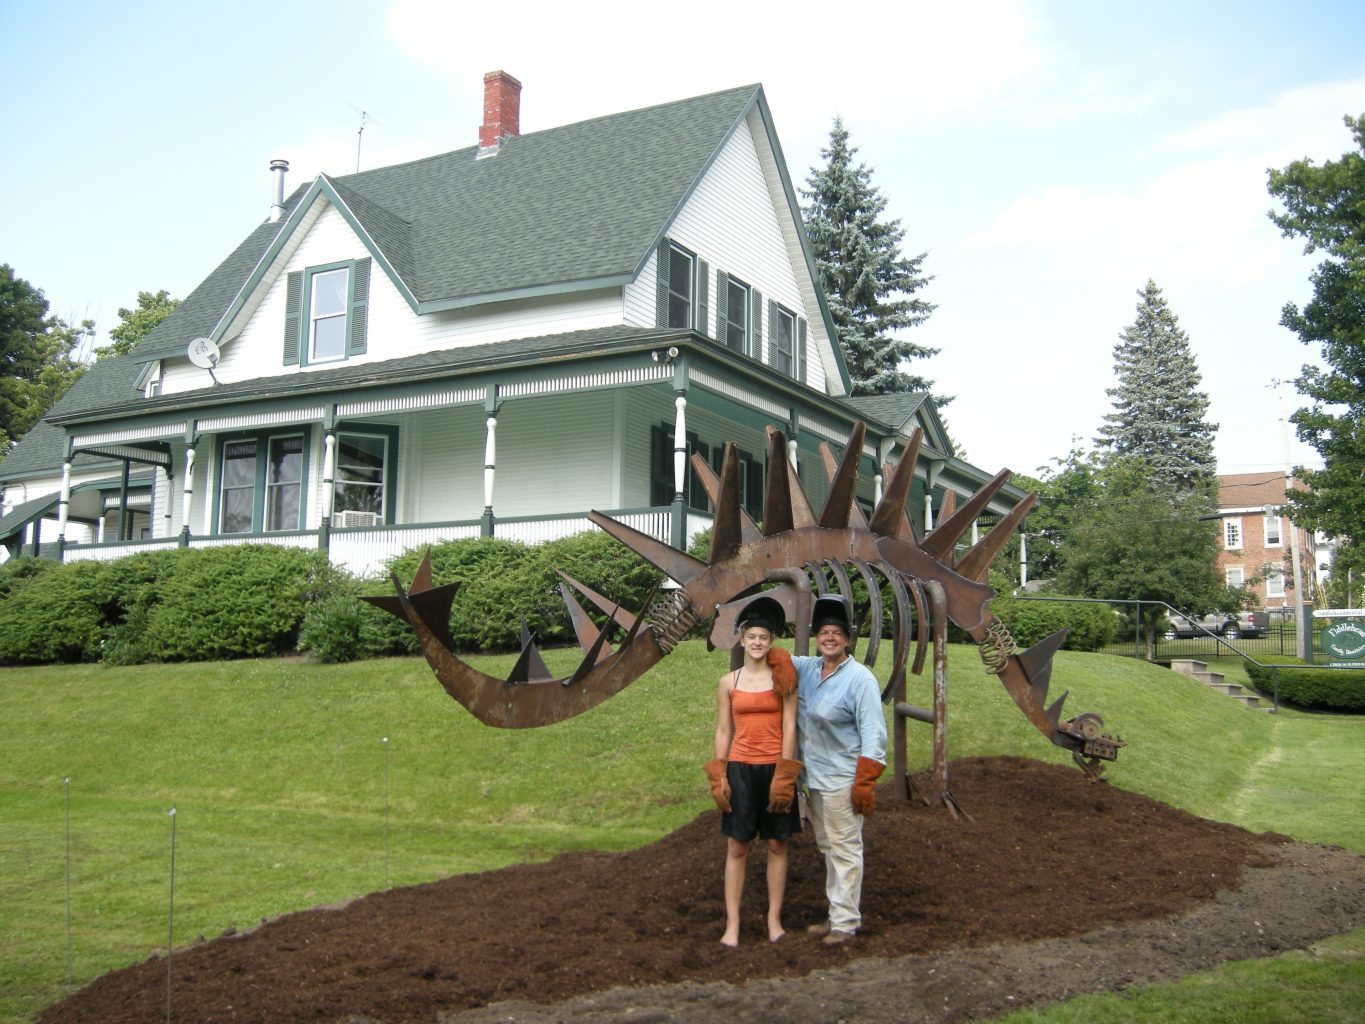 Image: Louisa and Lynda next to their sculpture of a dinosaur